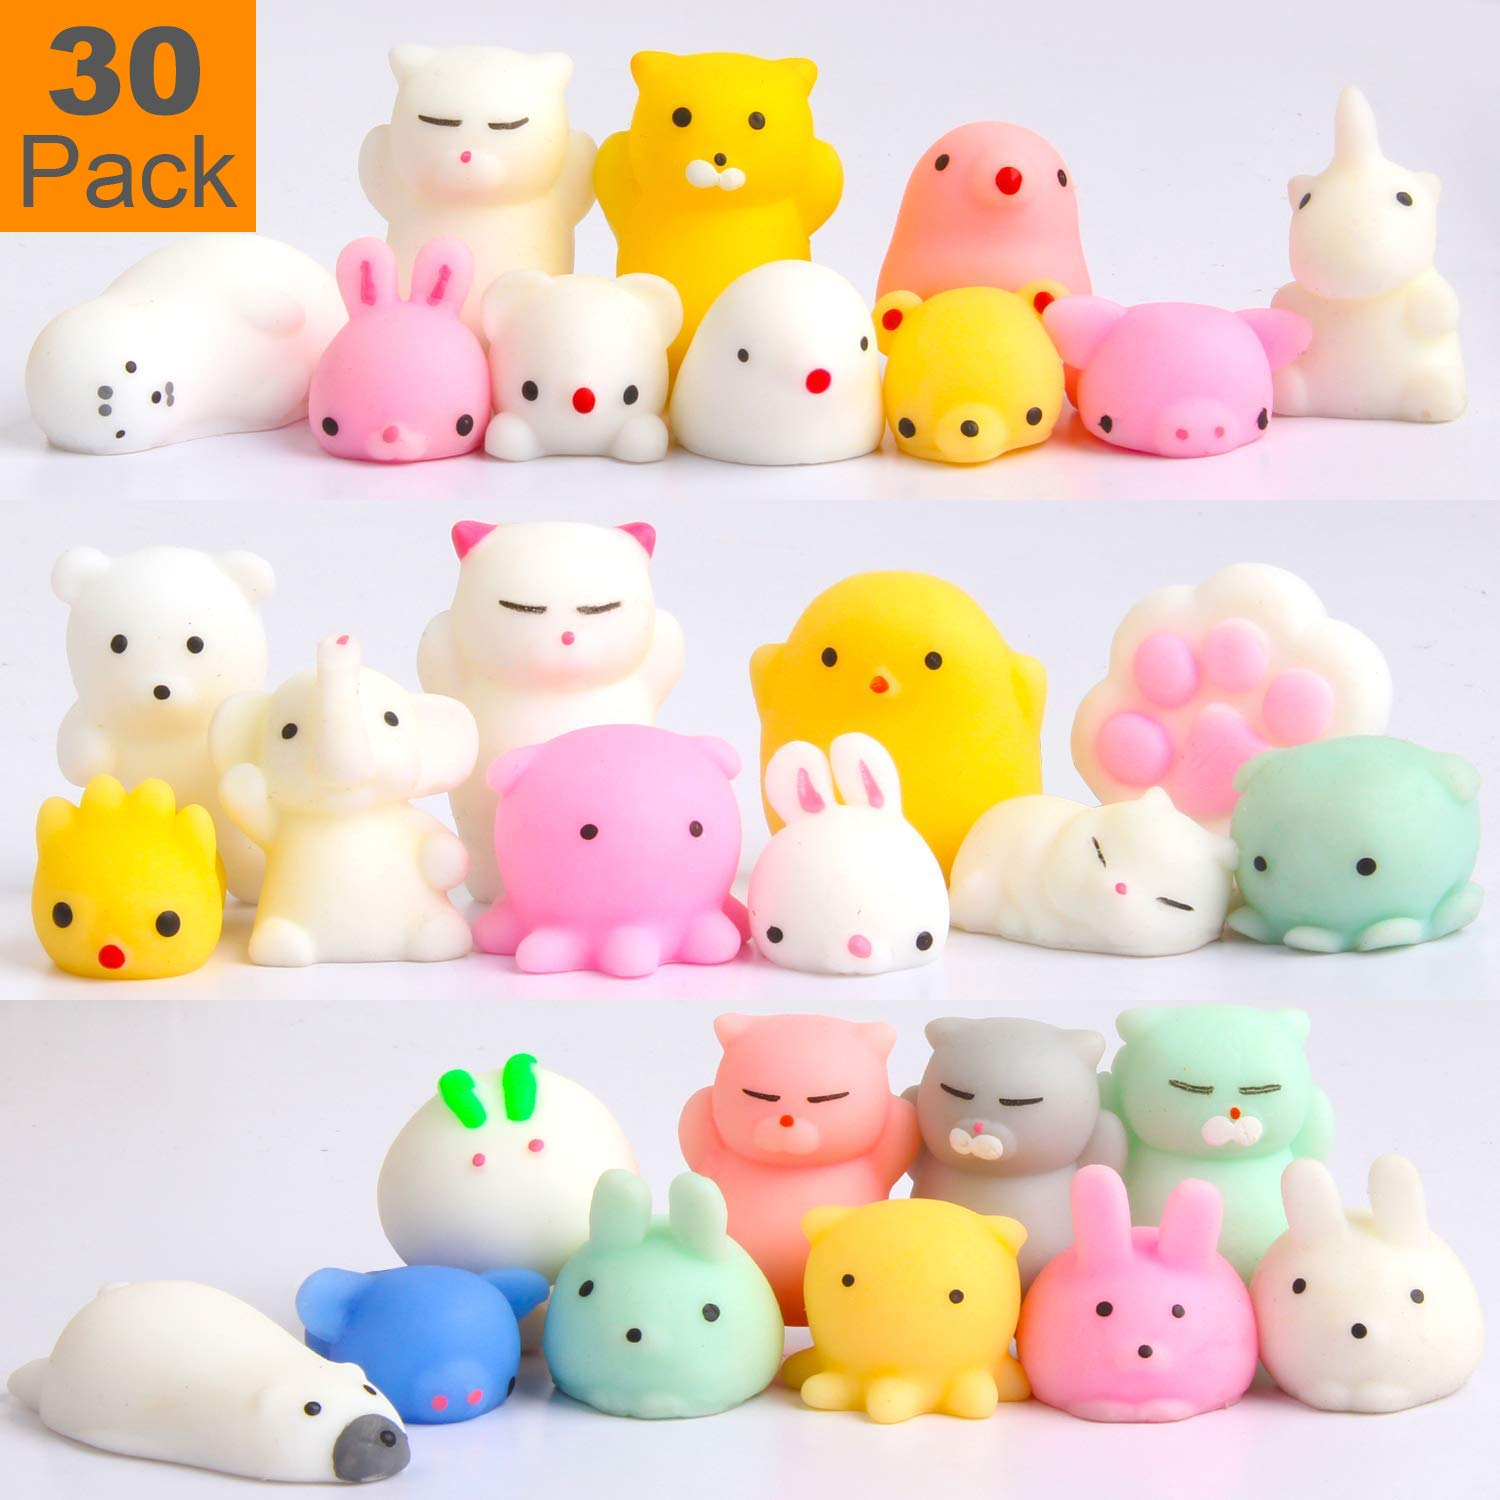 Squishy Toys Party Favors for Kids - Squishys 30 Pack Mini Mochi Squishies, Pinata Filler Treasure Box Prizes Classroom Unicorn Cat Stress Reliever Pug Stuffed Animal Silicon Panda Plushies by Feroxo by Feroxo